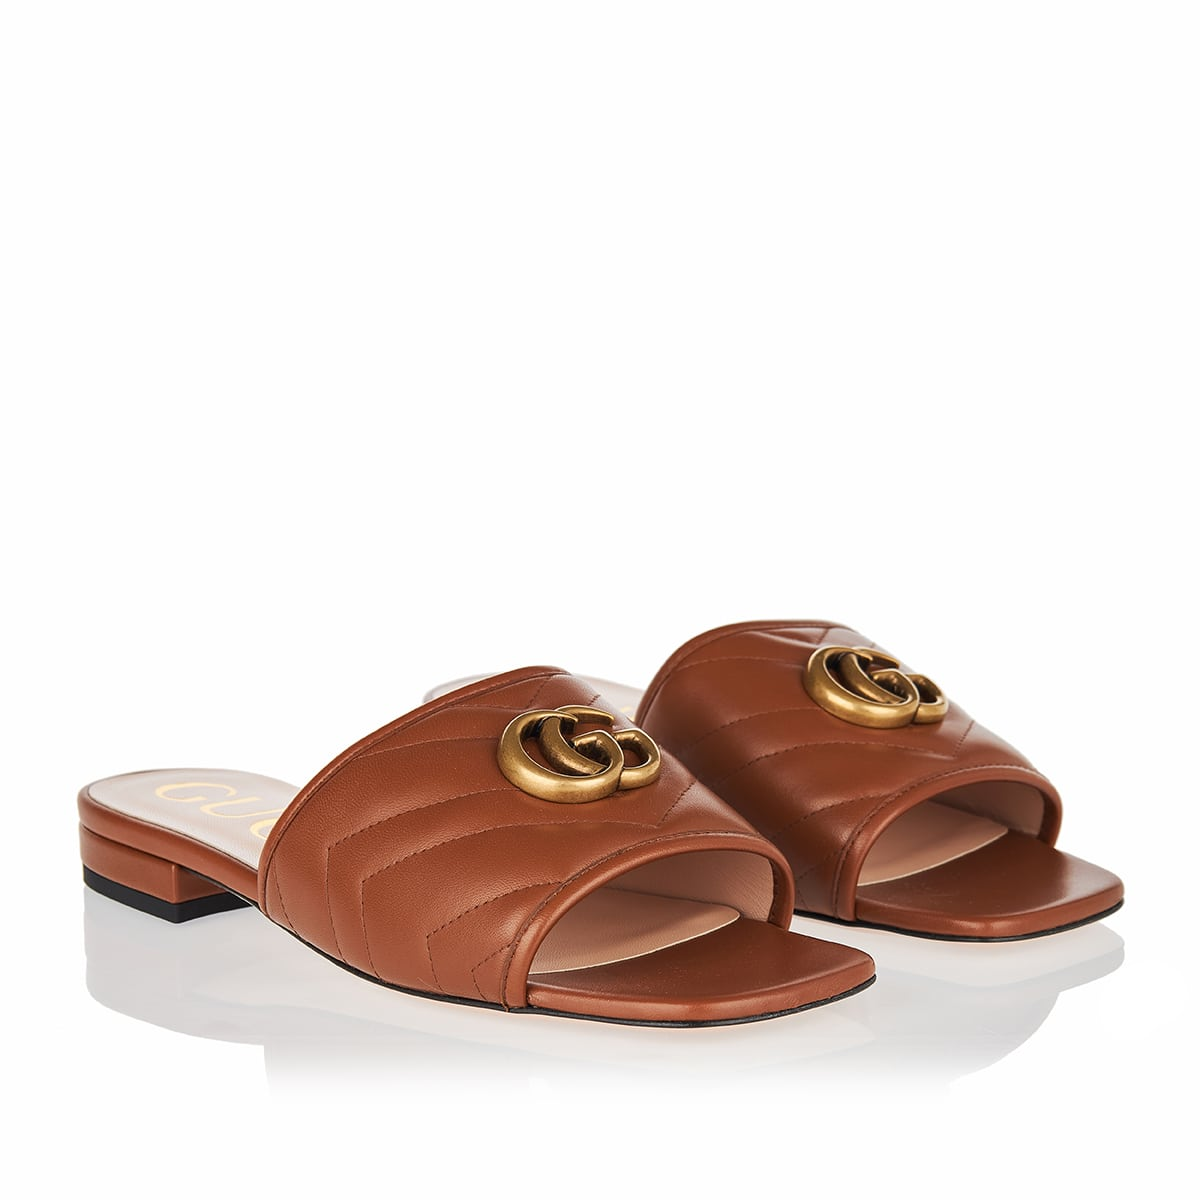 GG quilted leather slides